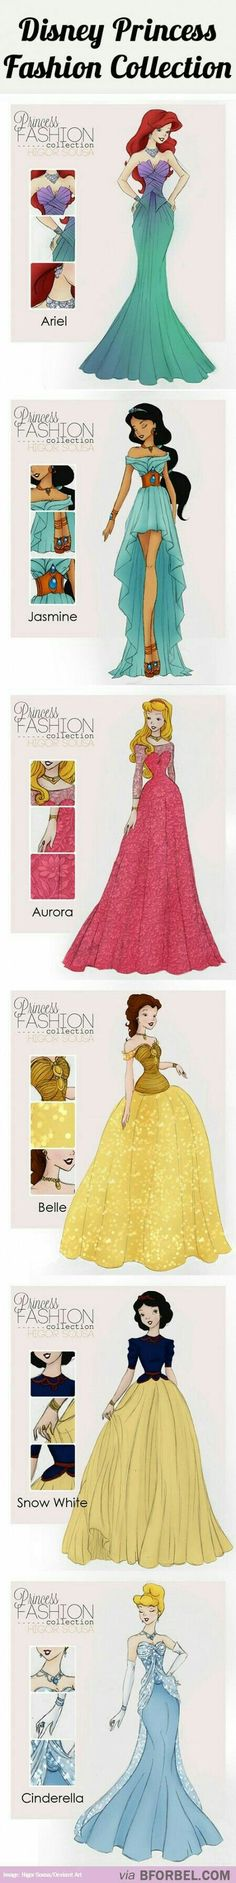 6 Disney Princess Fashion Collection they are really cute!